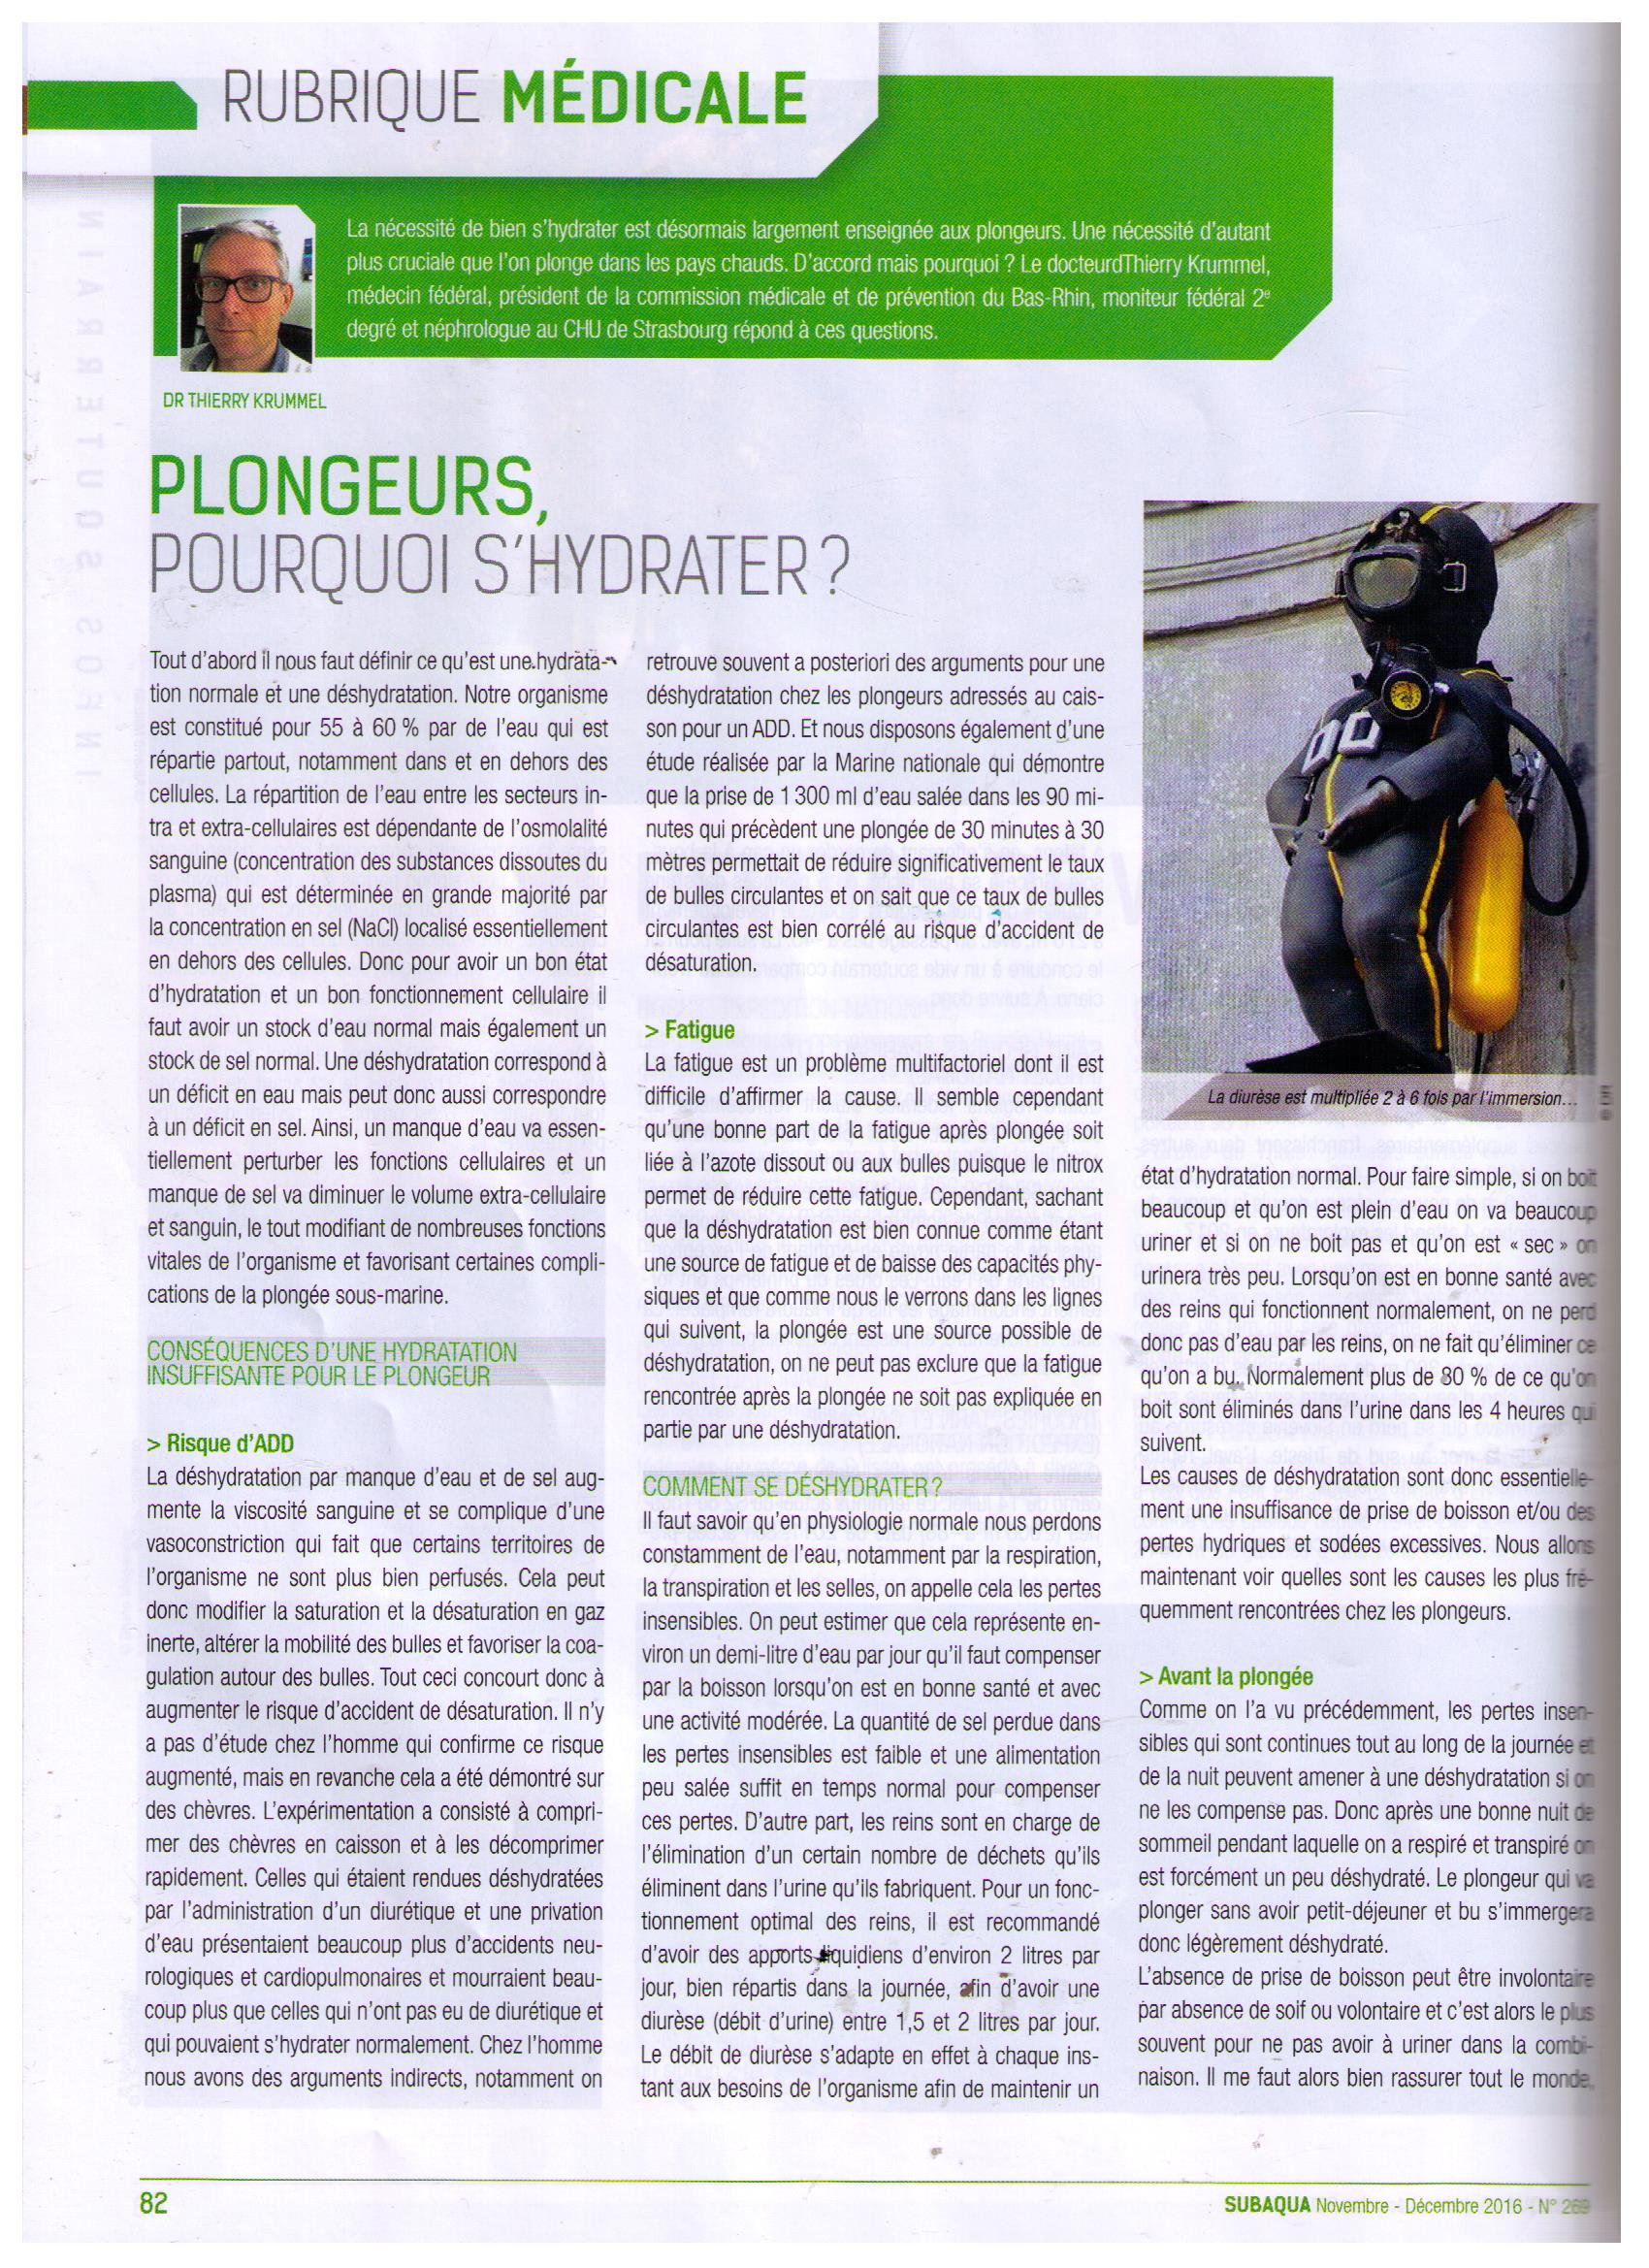 Pourquoi shydrater page 1